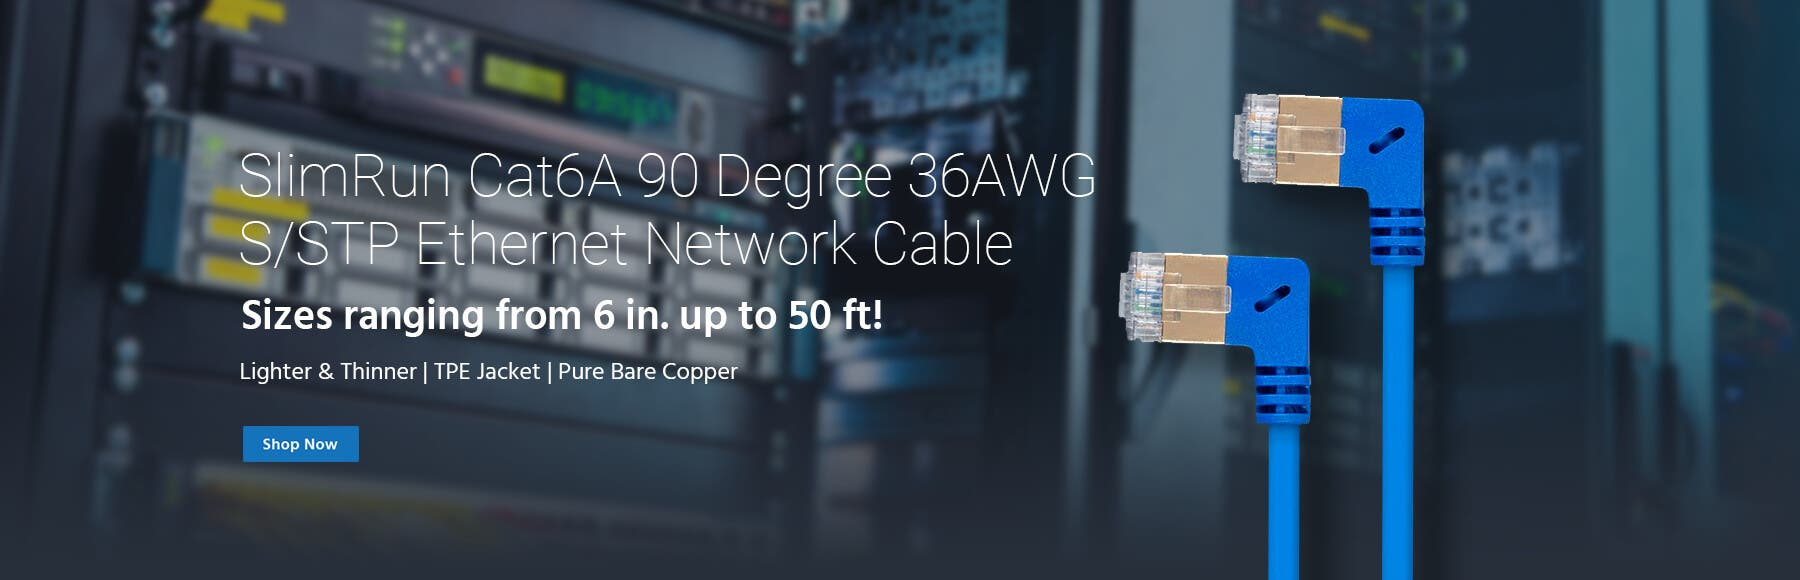 Cat6a 90 Degree Cable